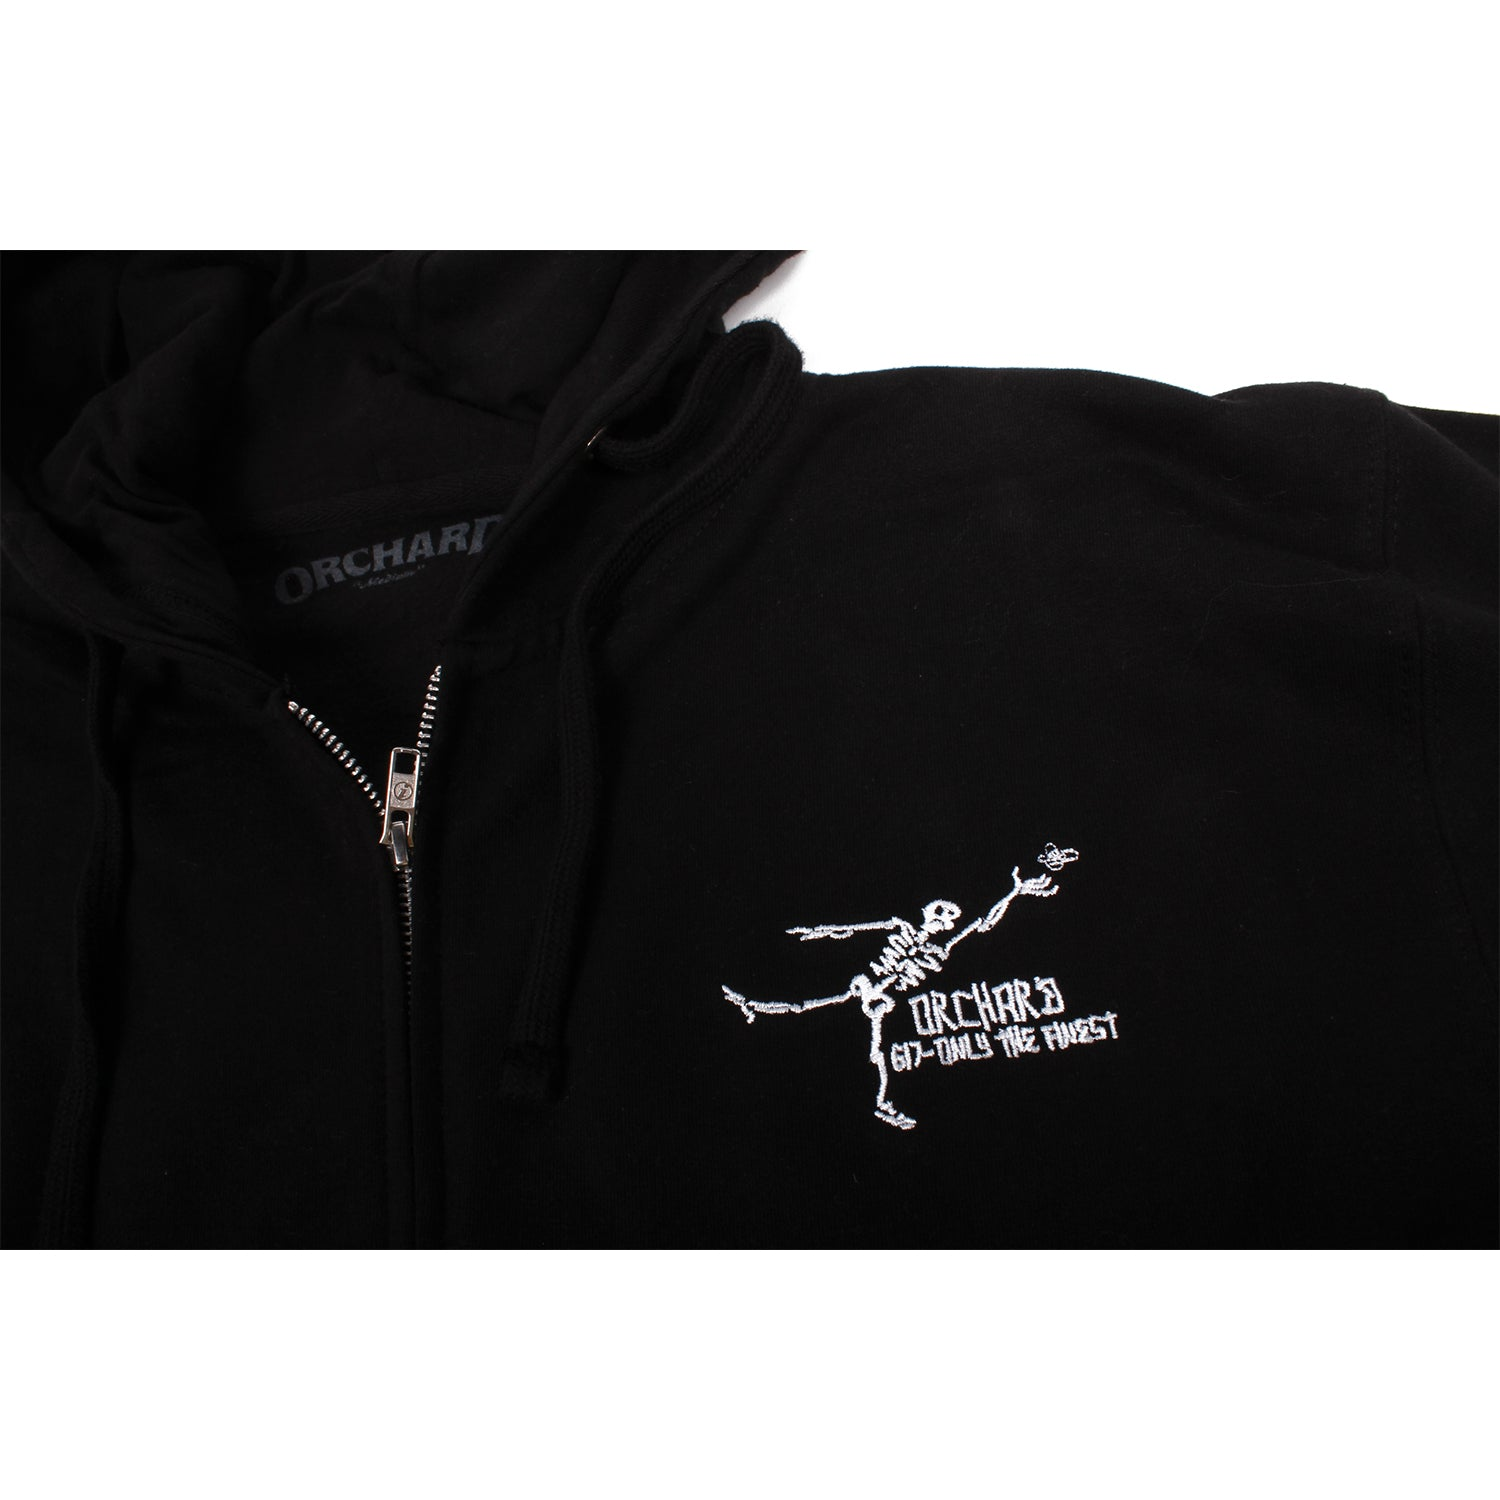 Orchard Gonz Only The Finest Zip Up Hooded Sweatshirt Black